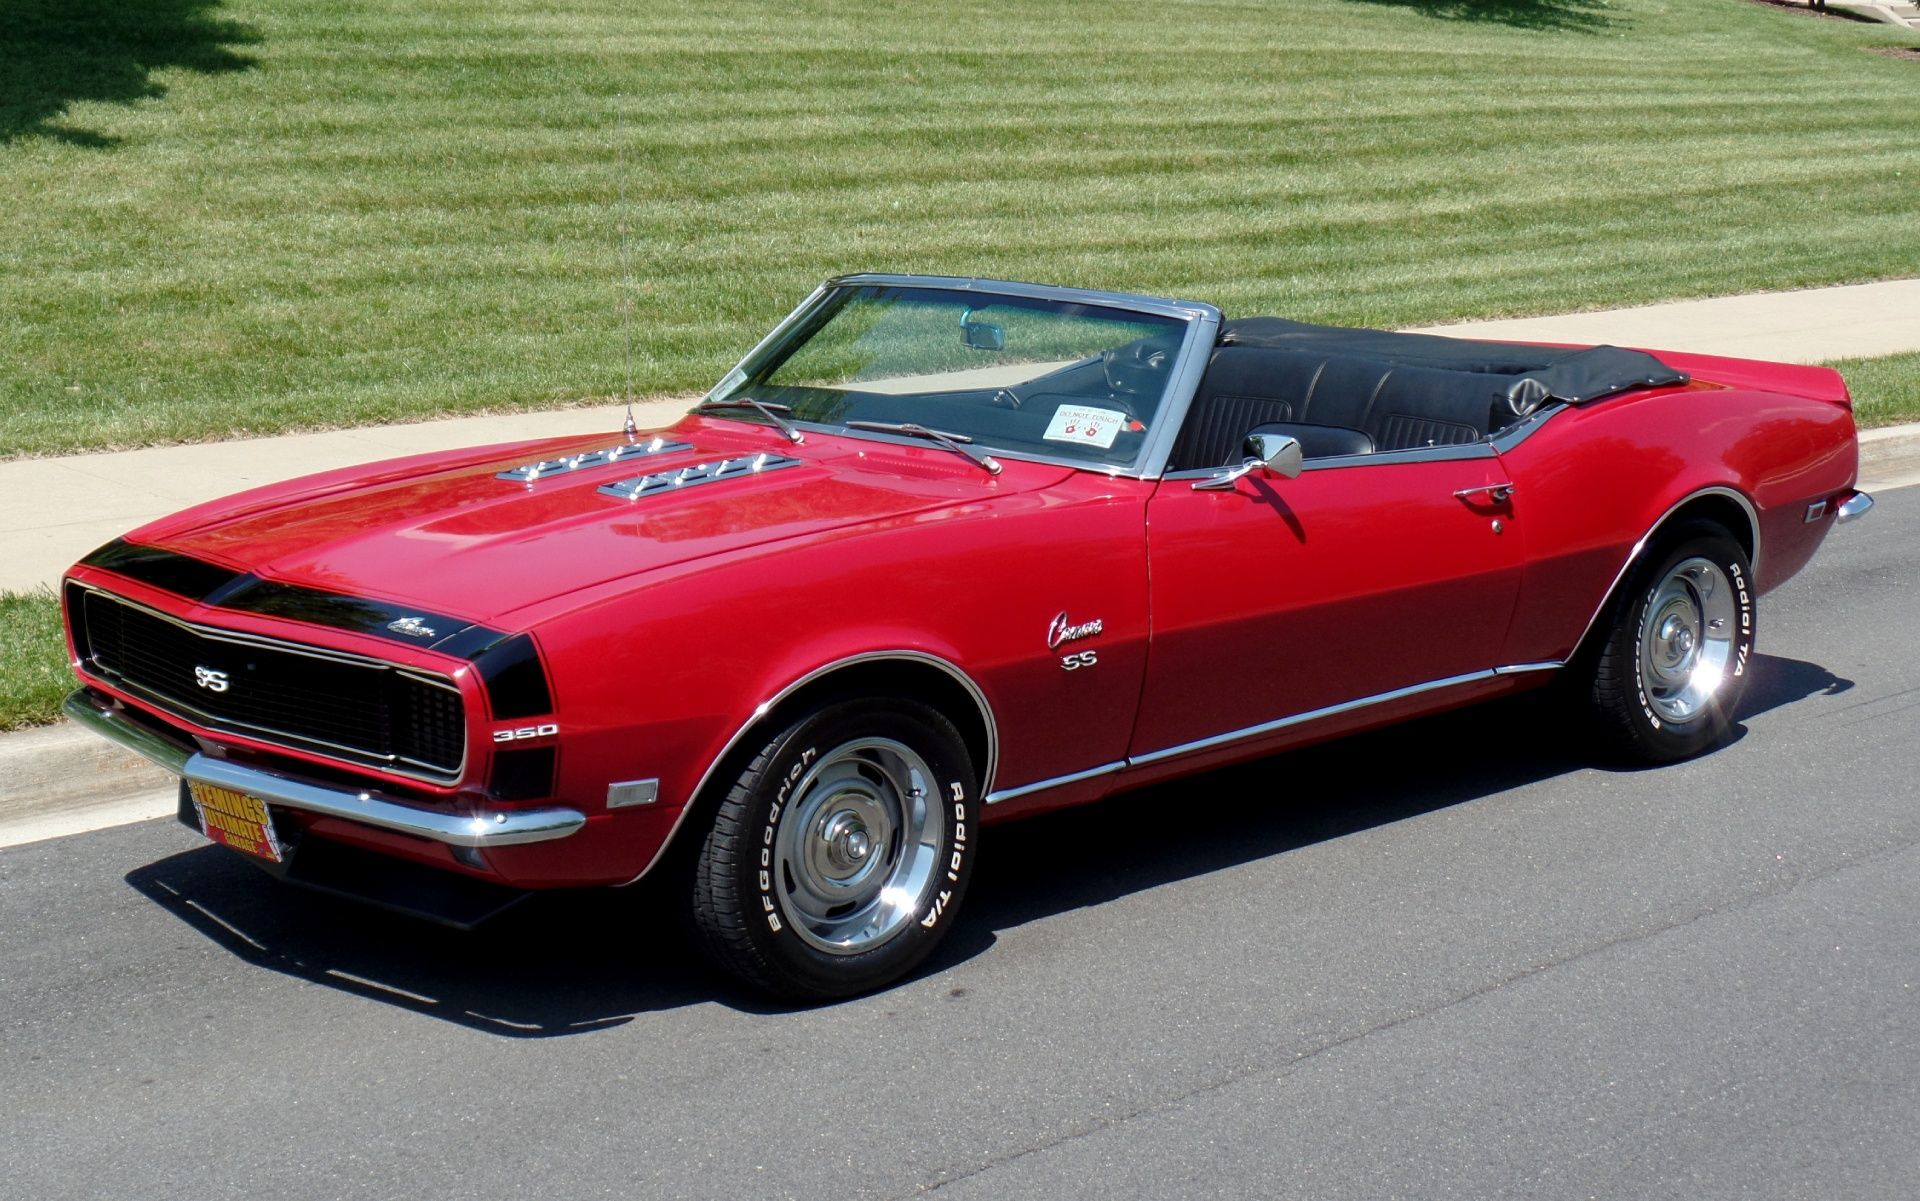 1968 Chevrolet Camaro Ss Muscle Car